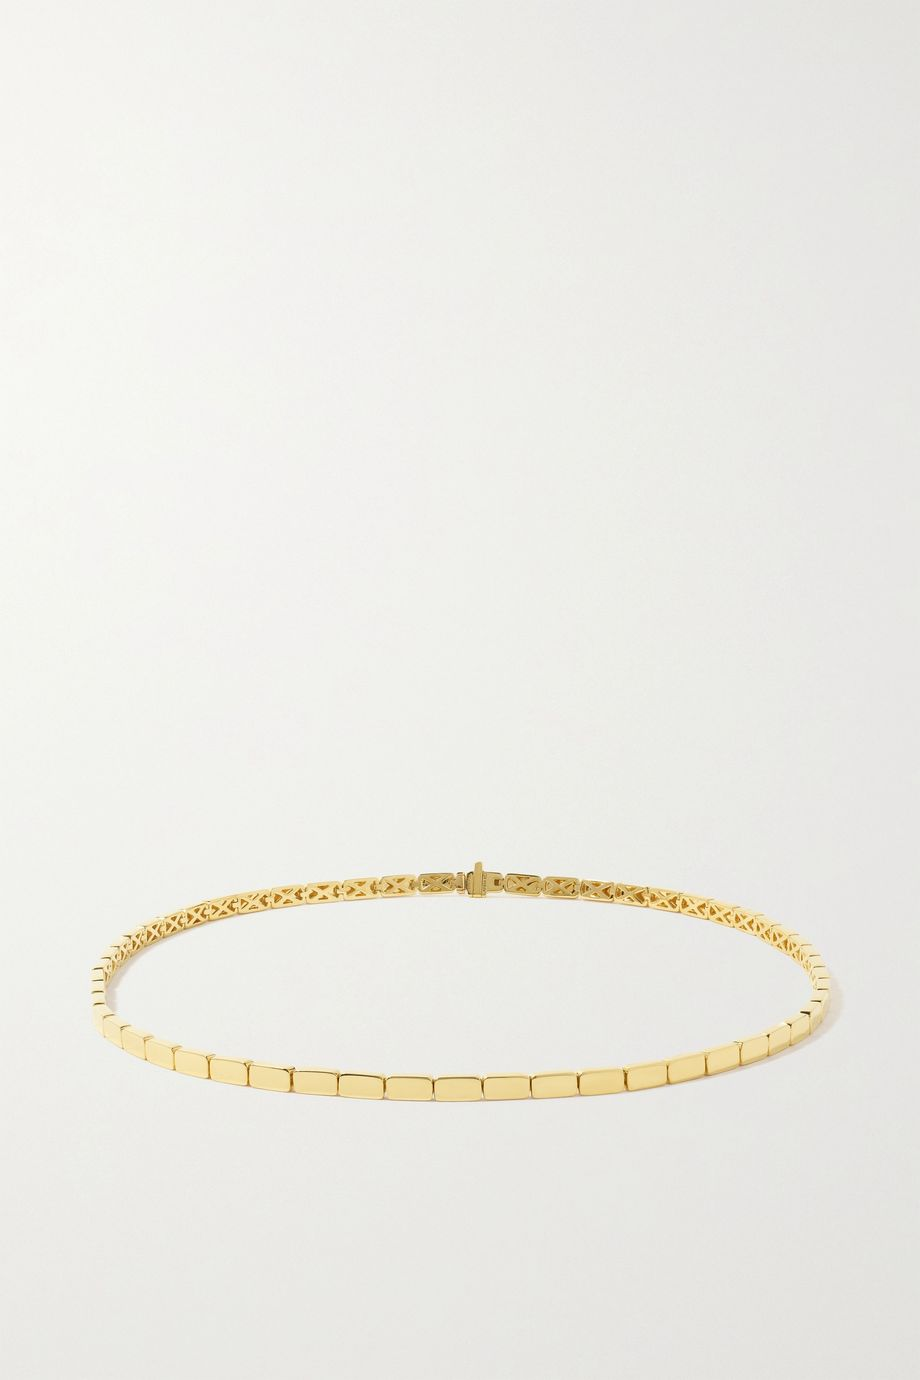 Anita Ko Bunny 18-karat gold necklace